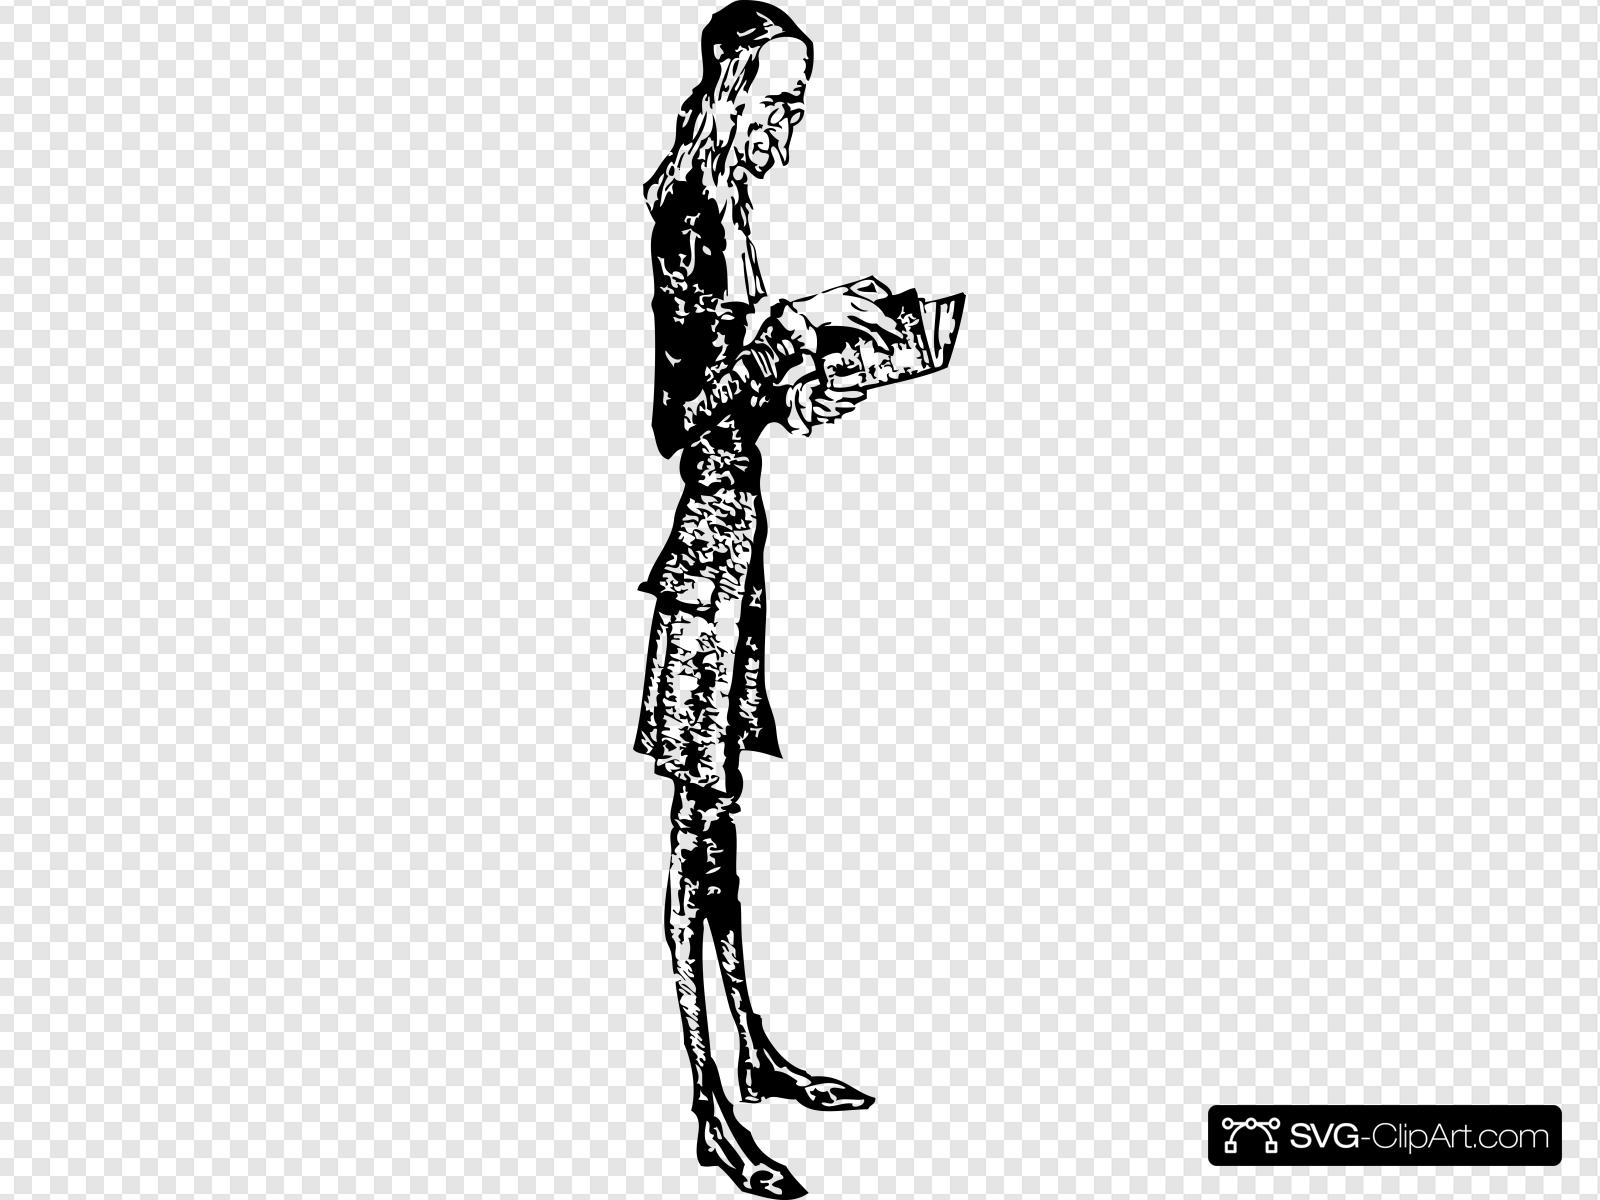 Skinny man clipart vector transparent Skinny Man Reading Clip art, Icon and SVG - SVG Clipart vector transparent